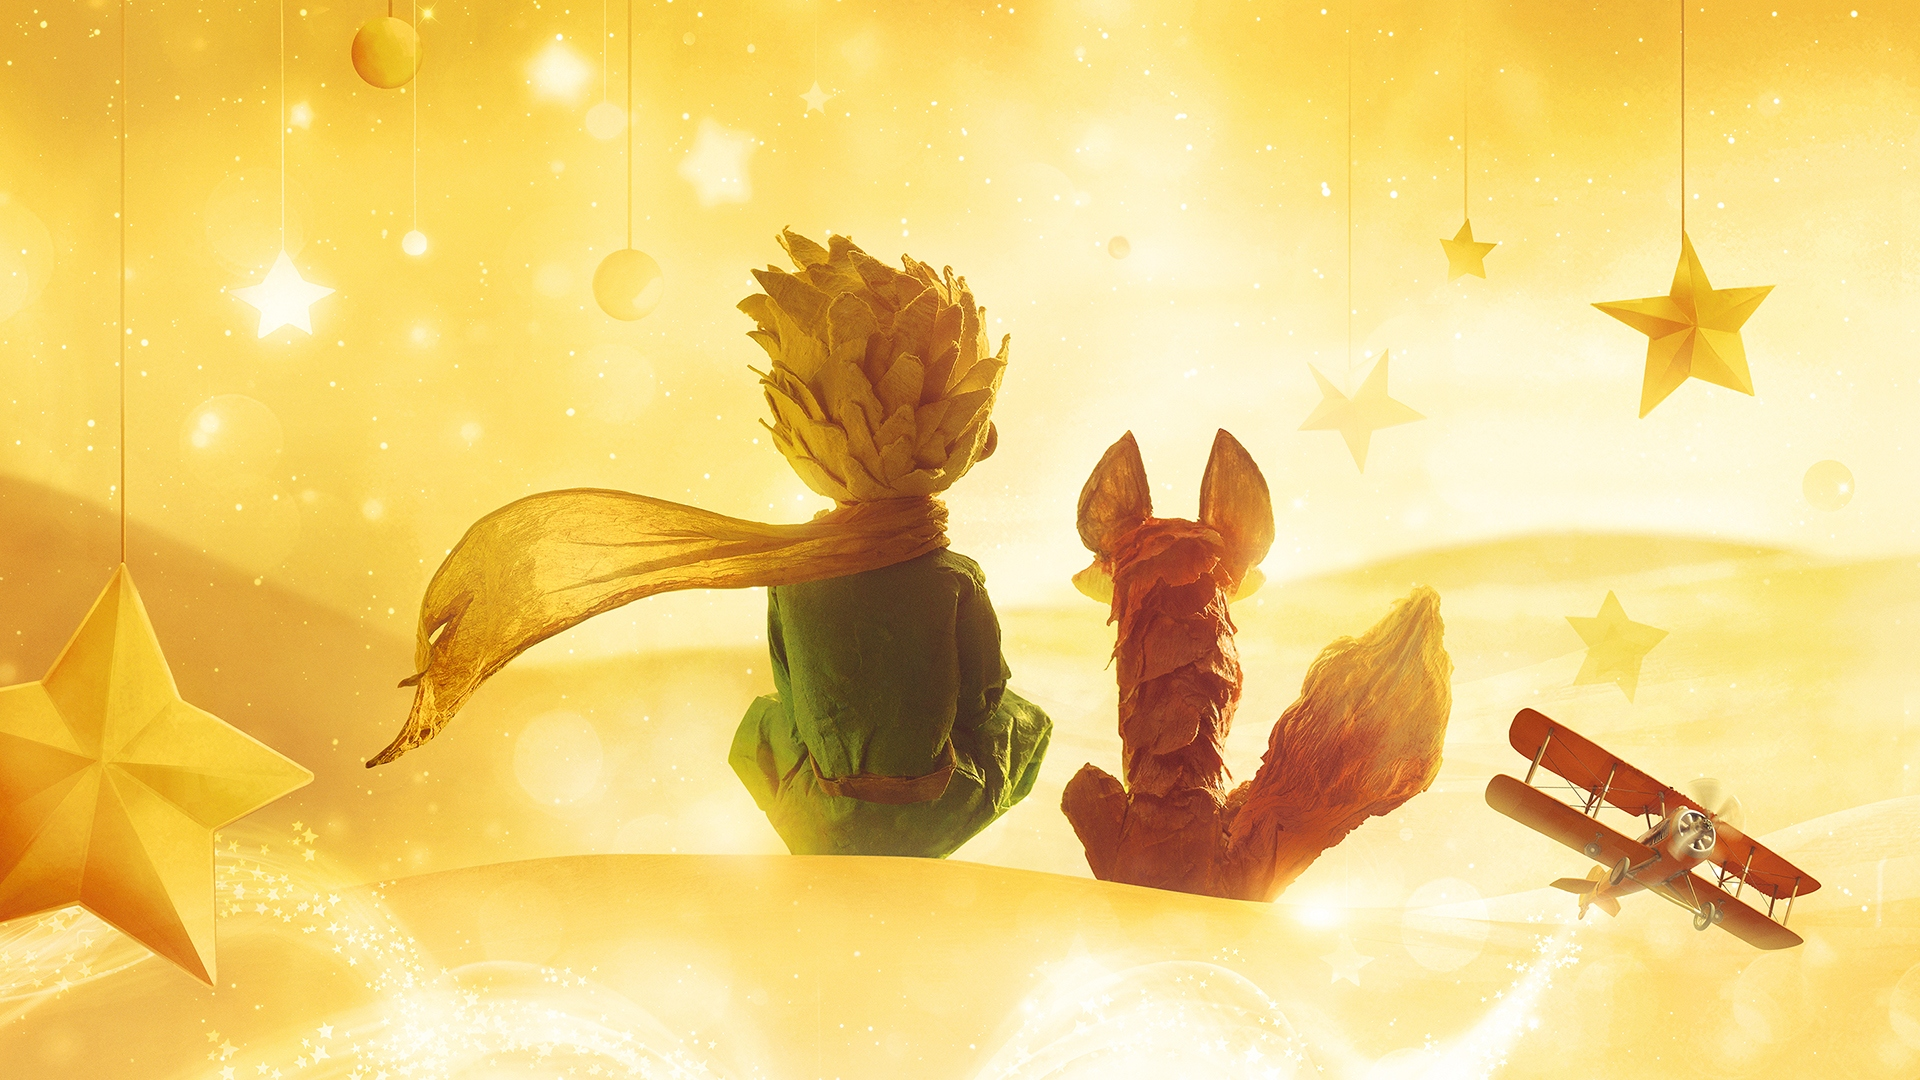 Little Prince Wallpaper